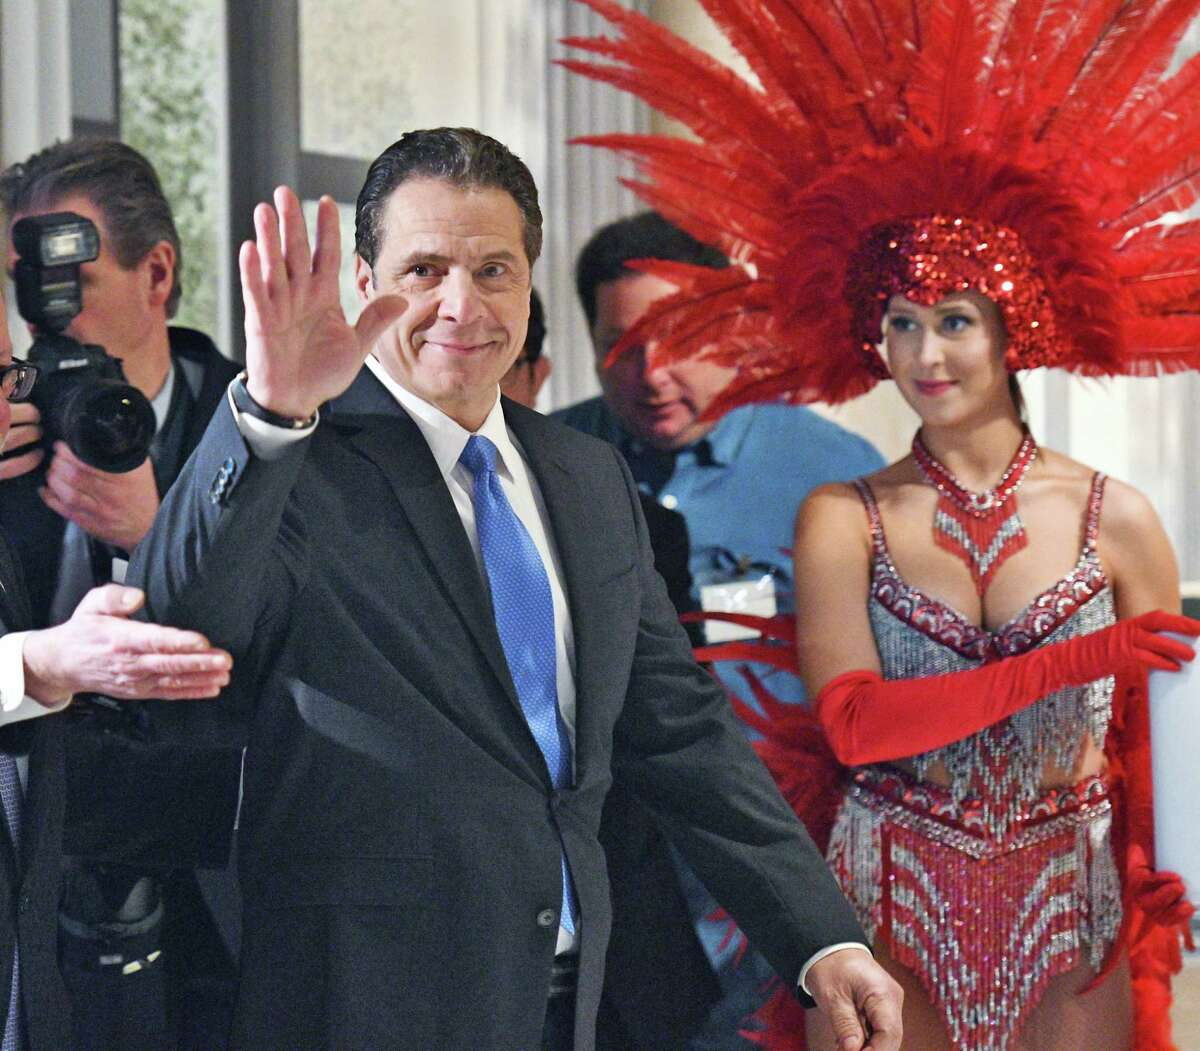 Gov. Andrew Cuomo waves as he arrives for the opening of Rivers Casino and Resort Wednesday Feb. 8, 2017 in Schenectady, NY. (John Carl D'Annibale / Times Union)